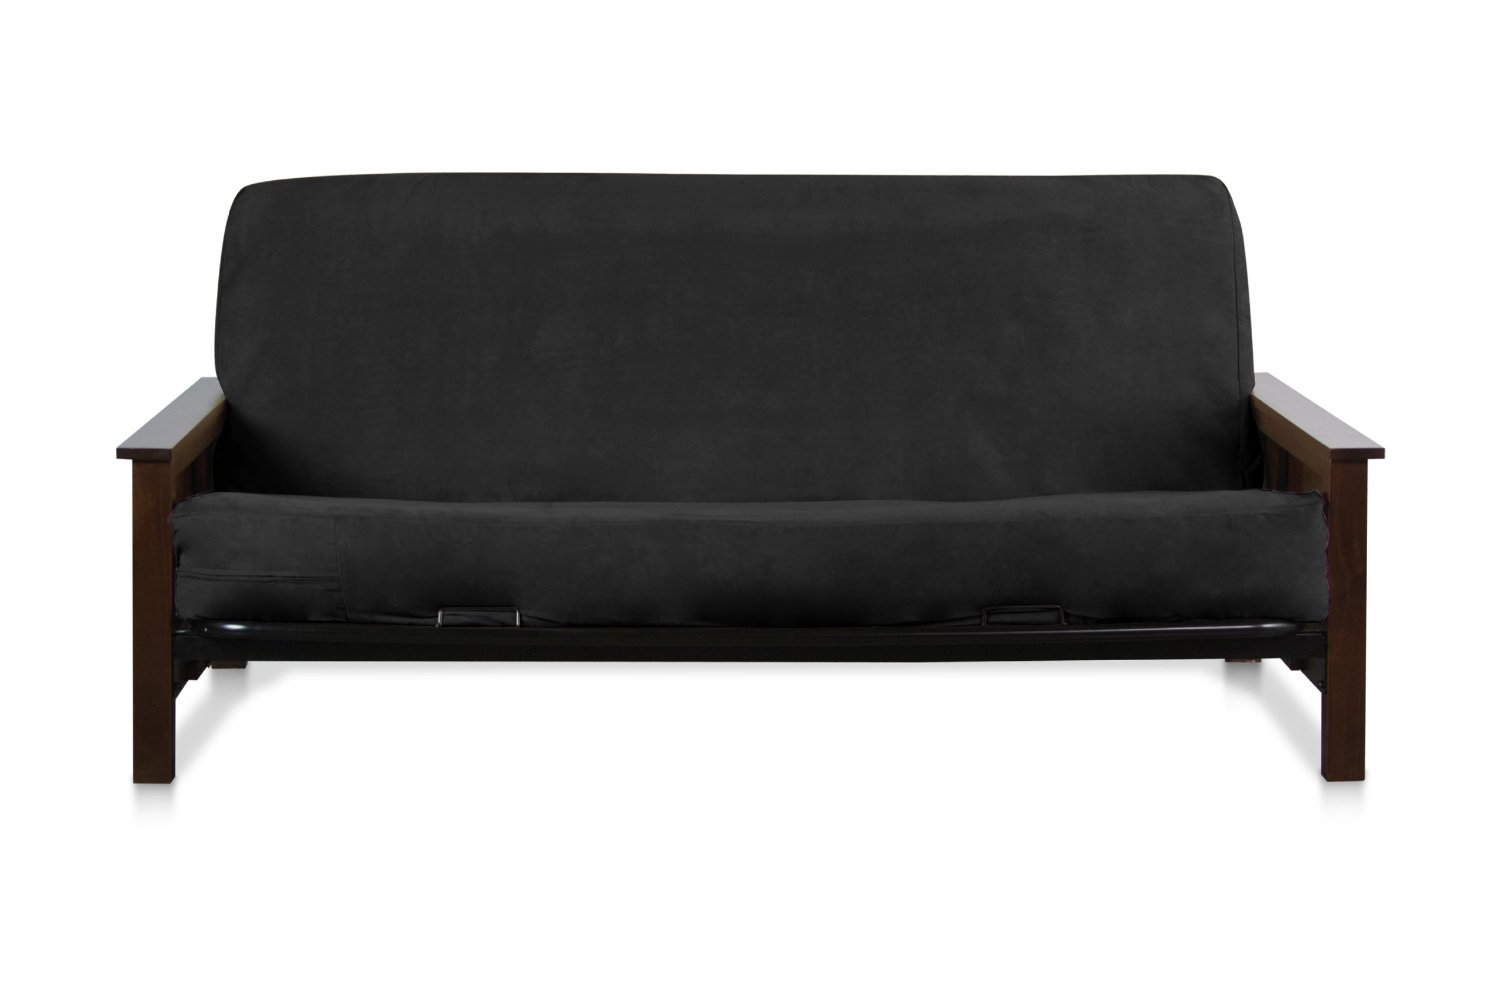 Medium image of amazon    micro suede futon cover protector not includes frame or mattress  black color   home  u0026 kitchen